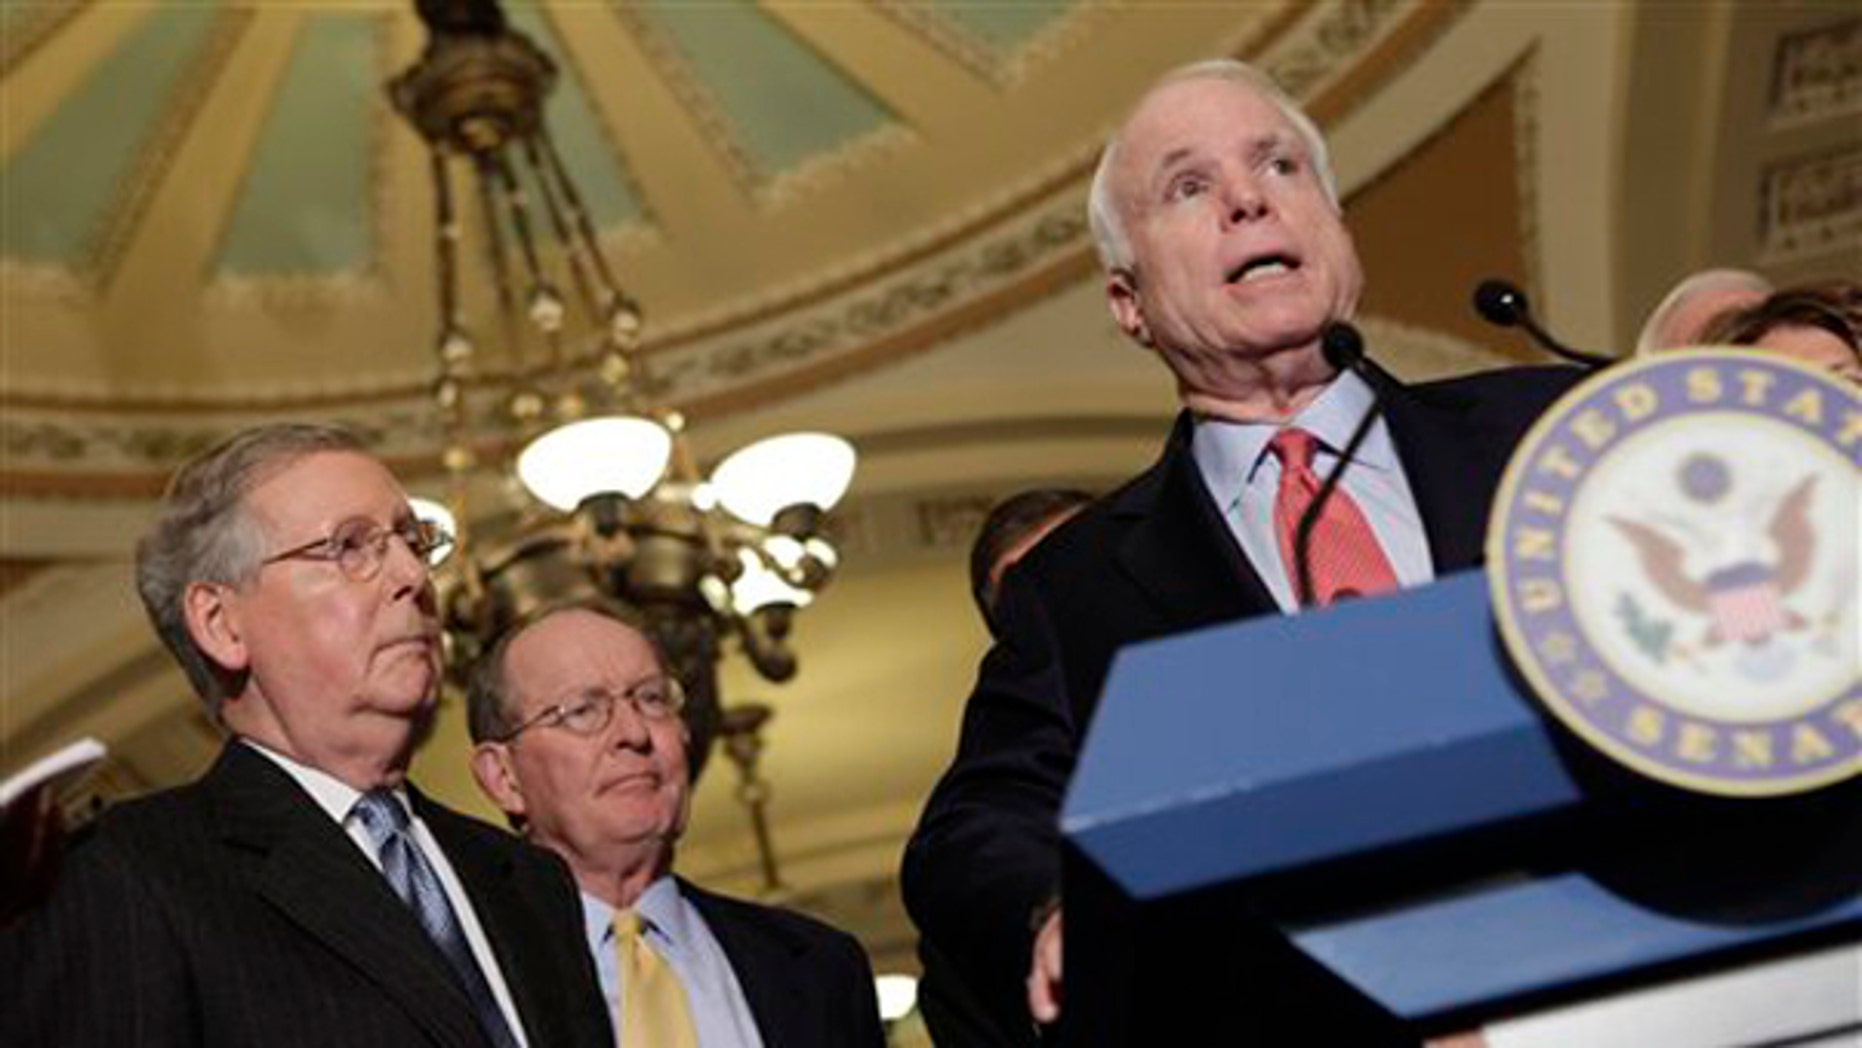 Sen. John McCain, right, speaks on Capitol Hill Dec. 1, accompanied by Senate Minority Leader Mitch McConnell, left, and Sen. Lamar Alexander. (AP Photo)